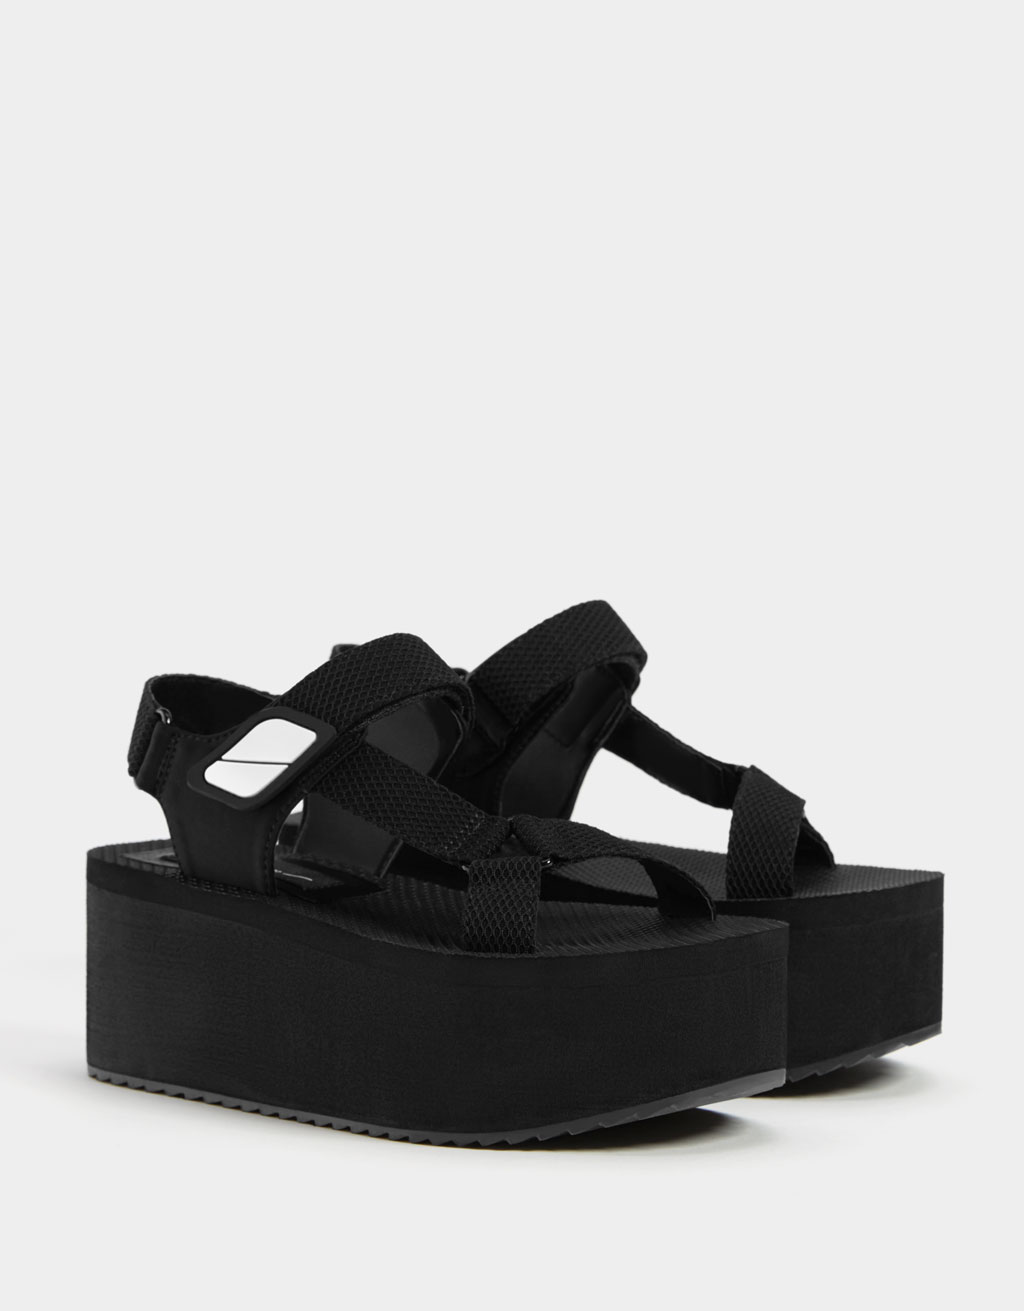 Sporty platform sandals with straps